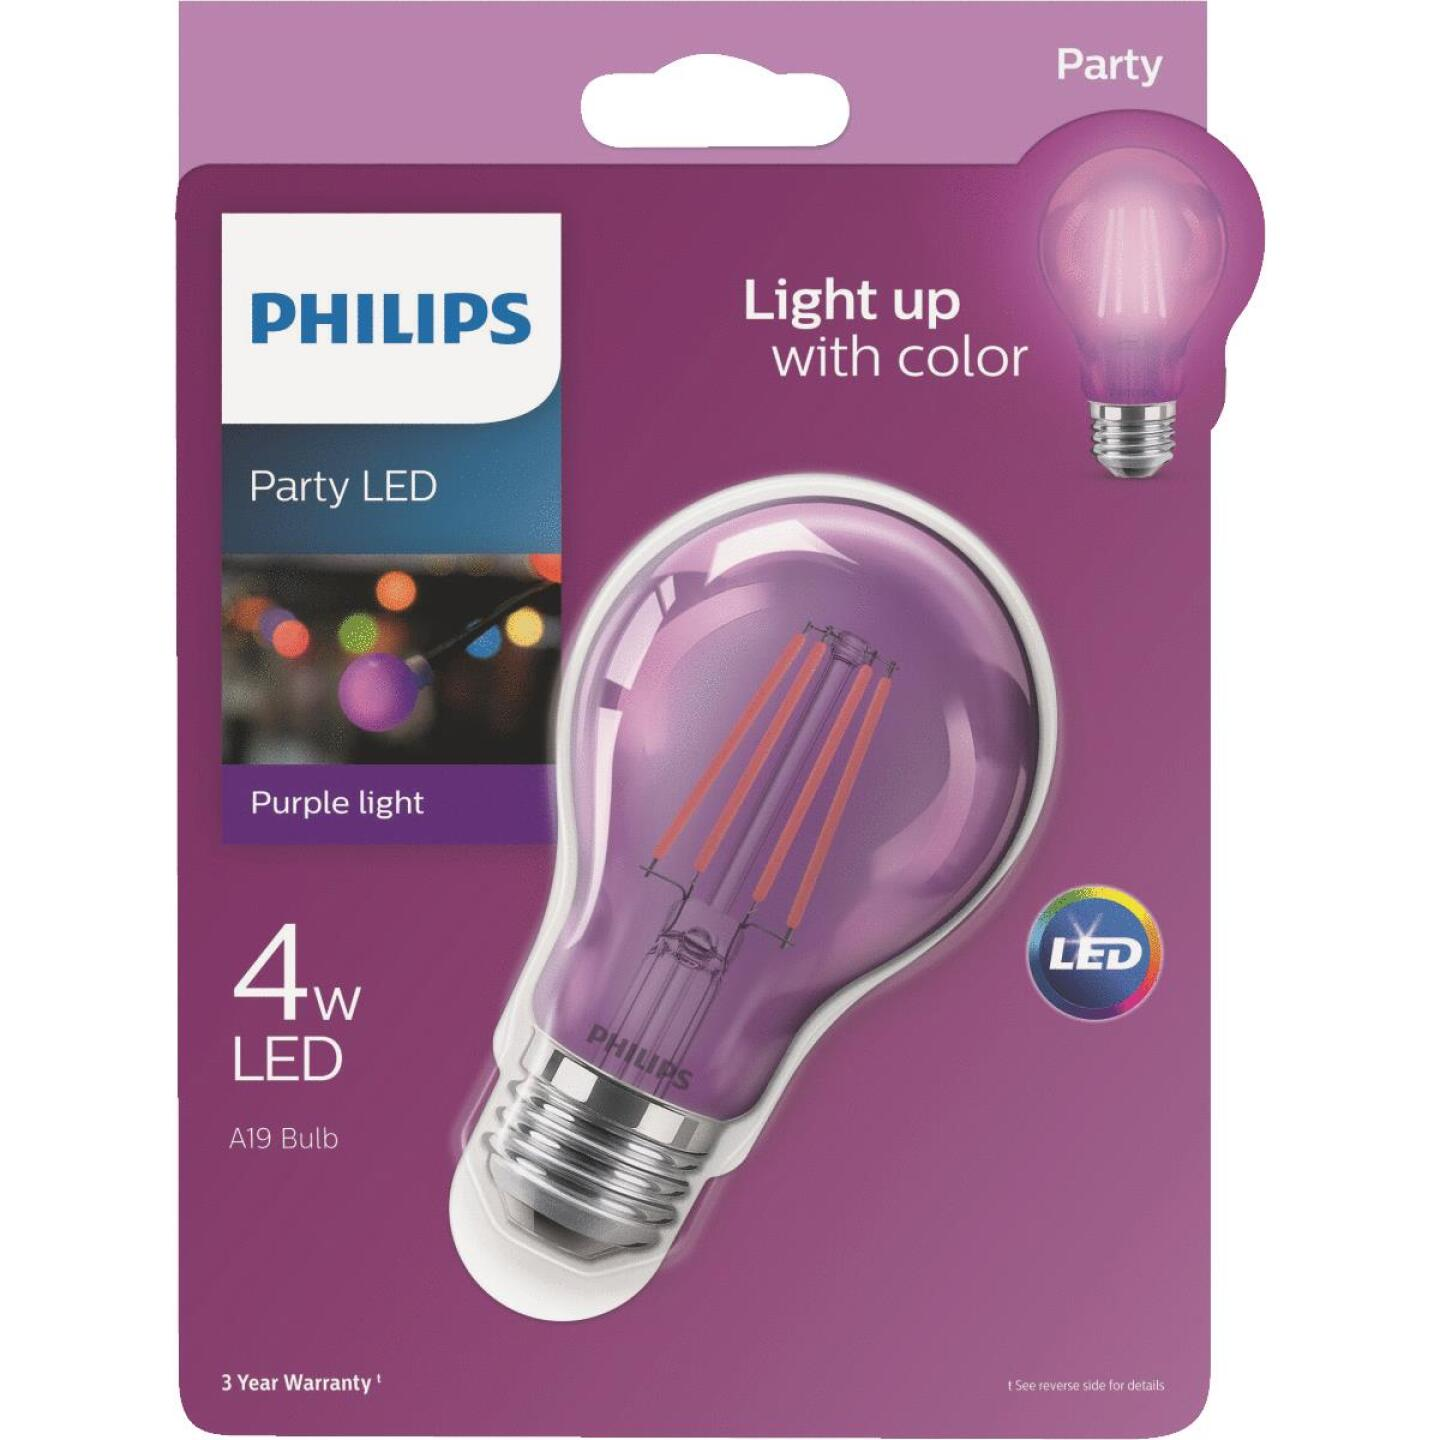 Philips Purple A19 Medium 4W Indoor/Outdoor LED Decorative Party Light Bulb Image 1